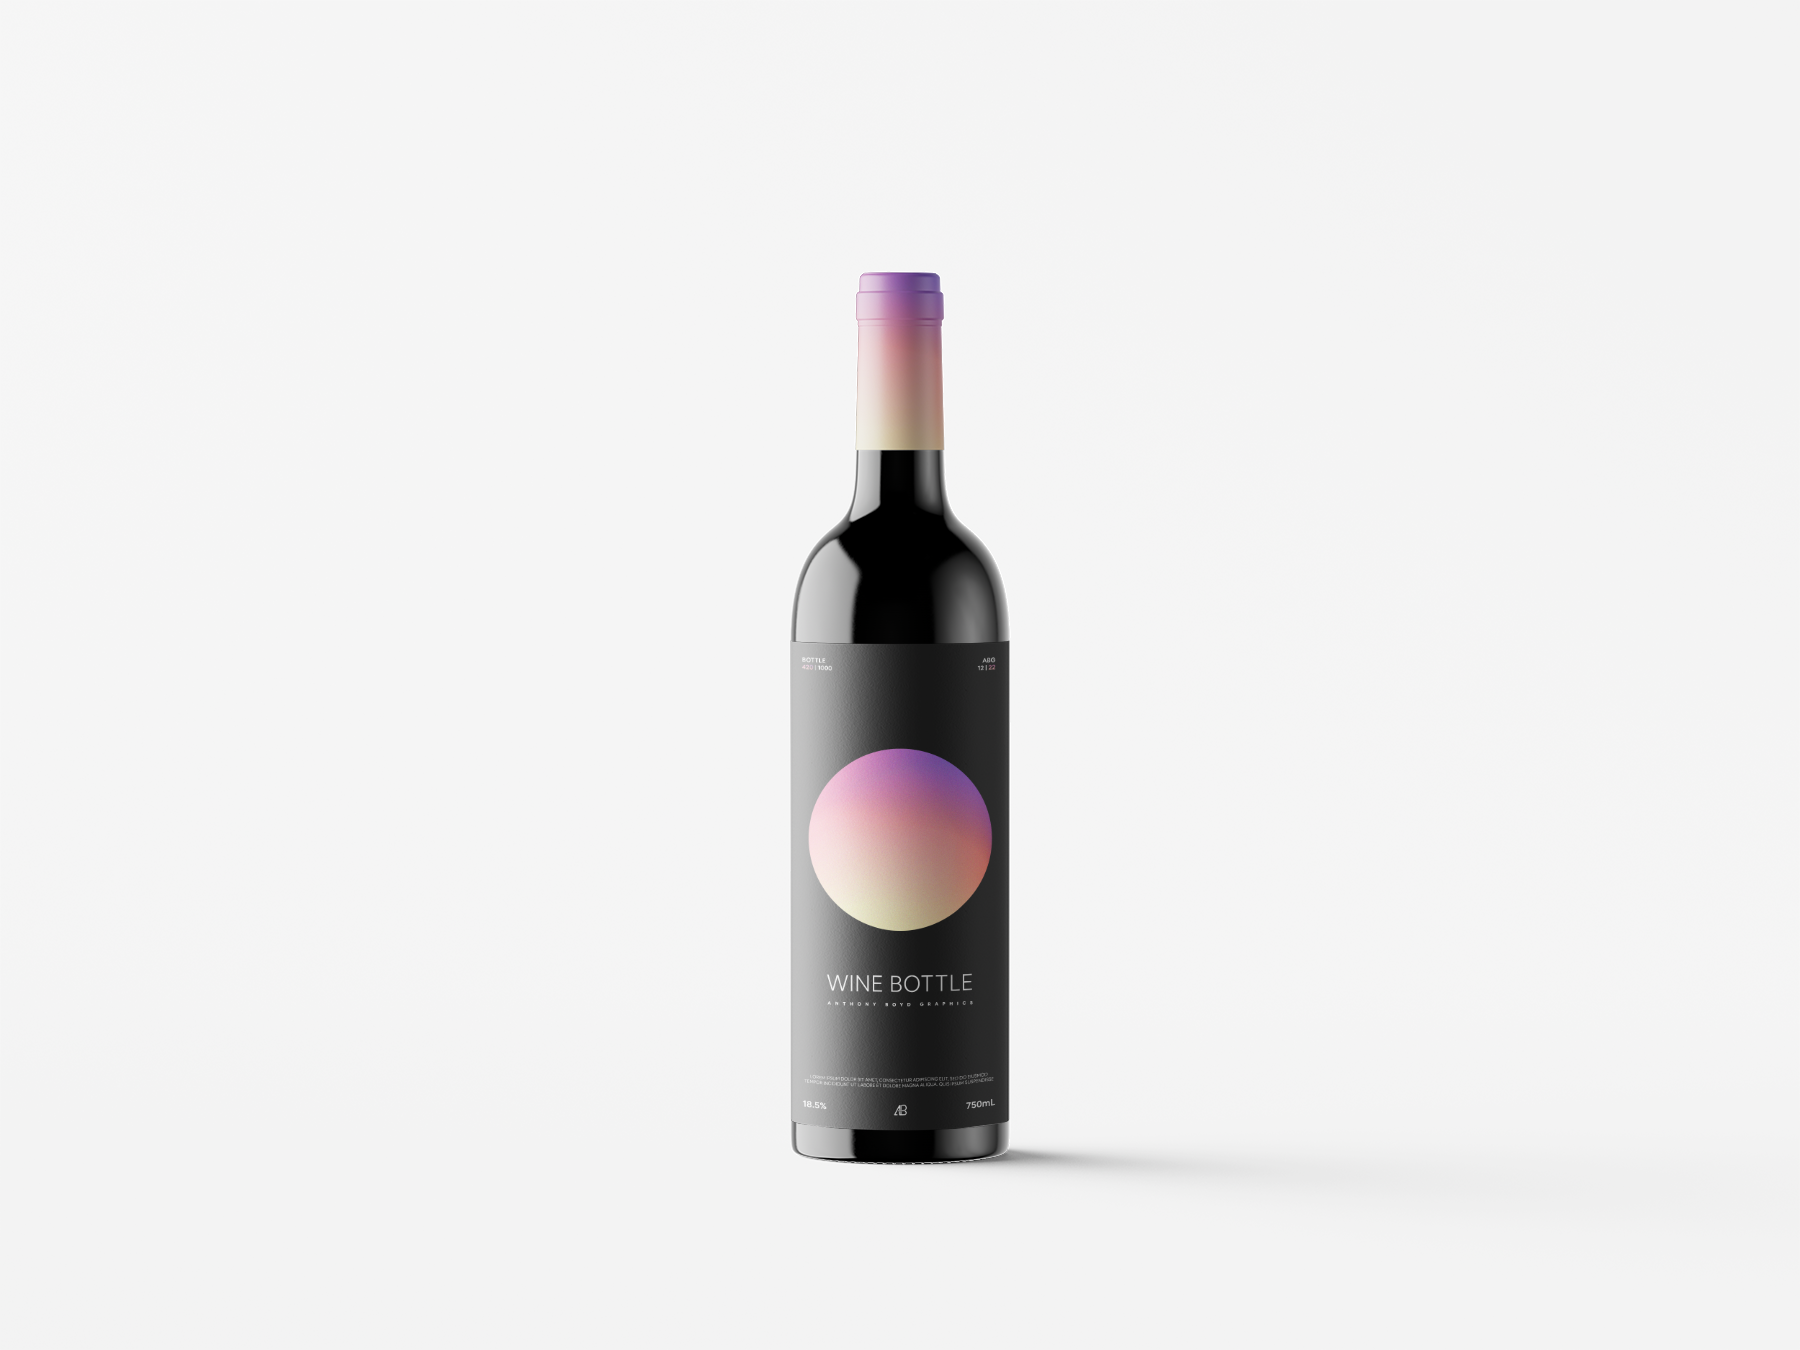 Free Standing Wine Bottle Mockup